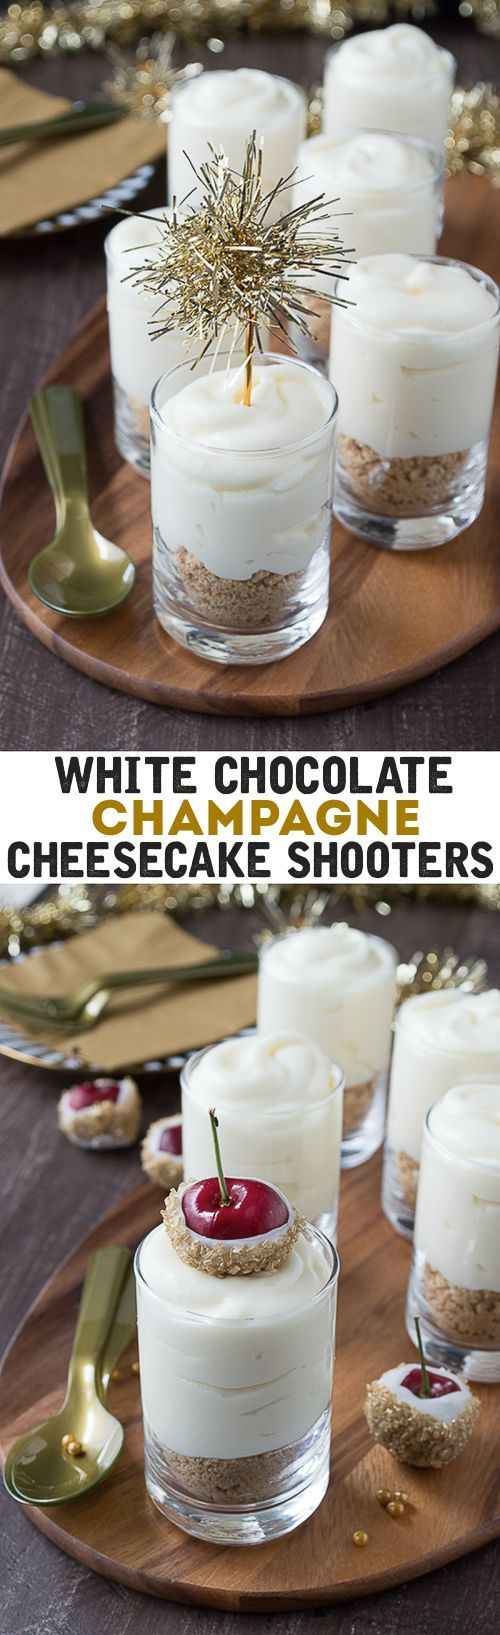 Make these fancy and easy white chocolate champagne cheesecake shooters for New Years Eve! I LOVE the choice between the gold tinsel toppers and the cherries dipped in gold sprinkles!